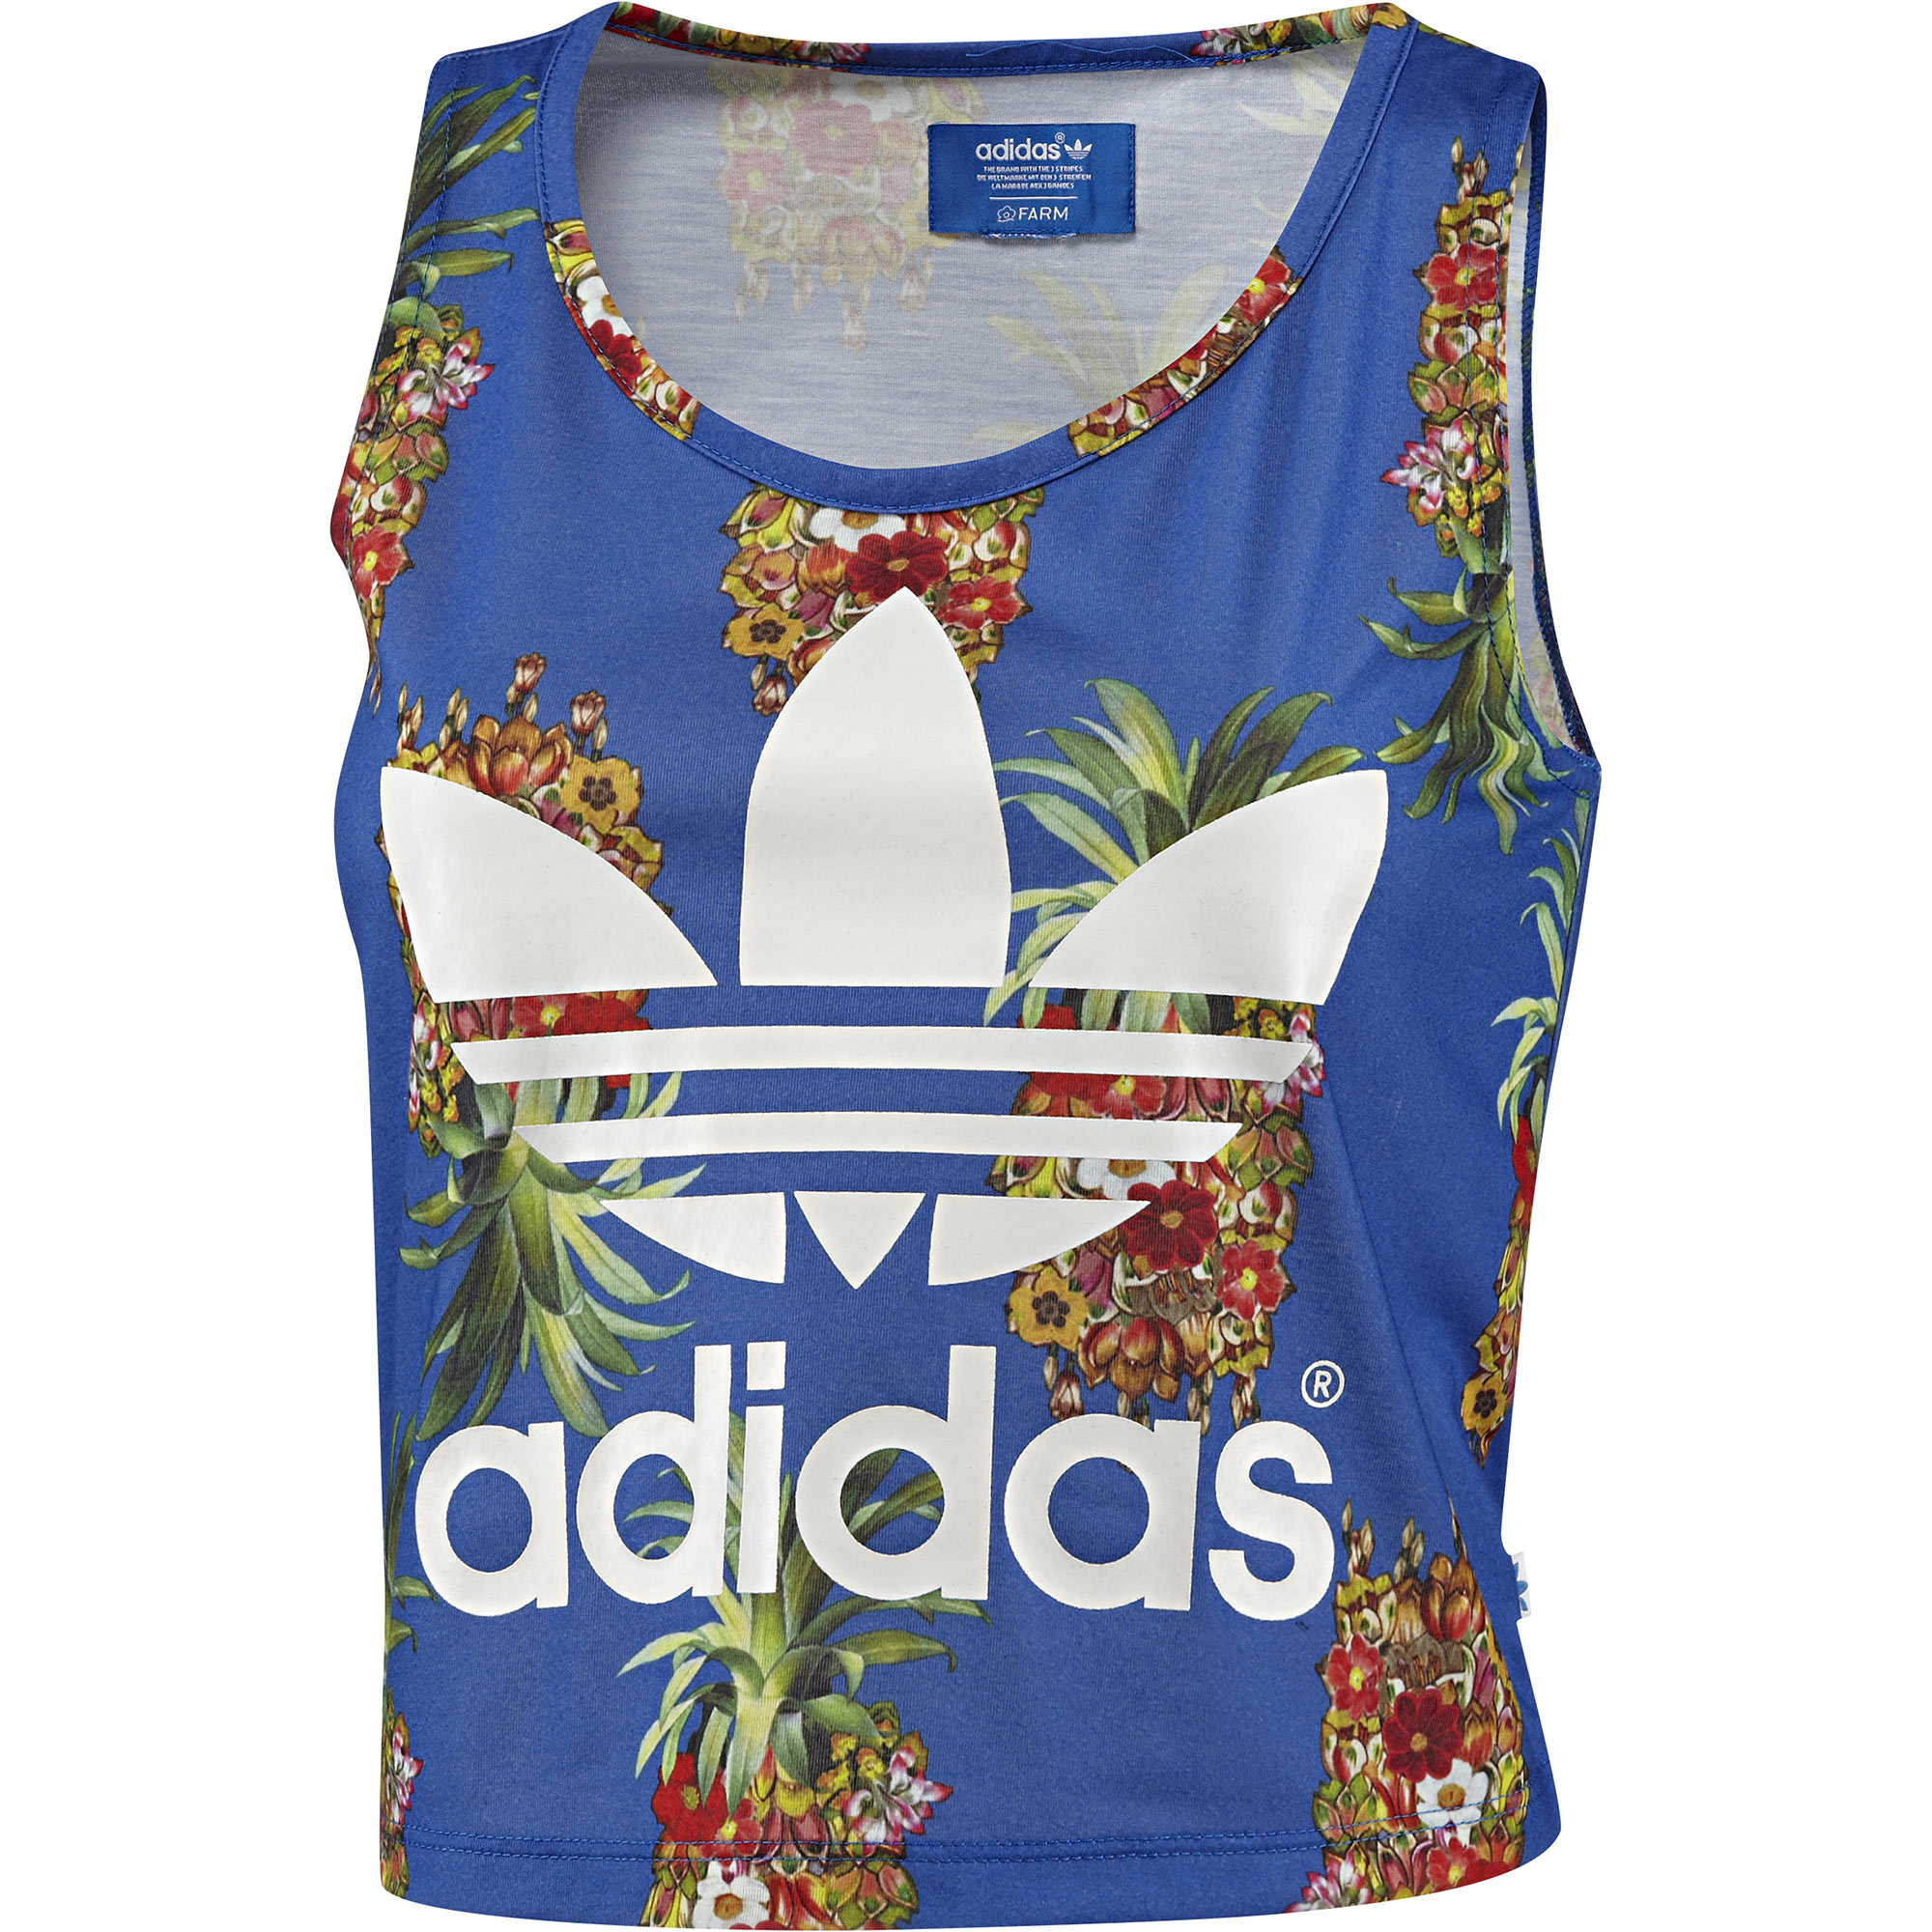 adidas frutaflor tank top adidas deutschland. Black Bedroom Furniture Sets. Home Design Ideas